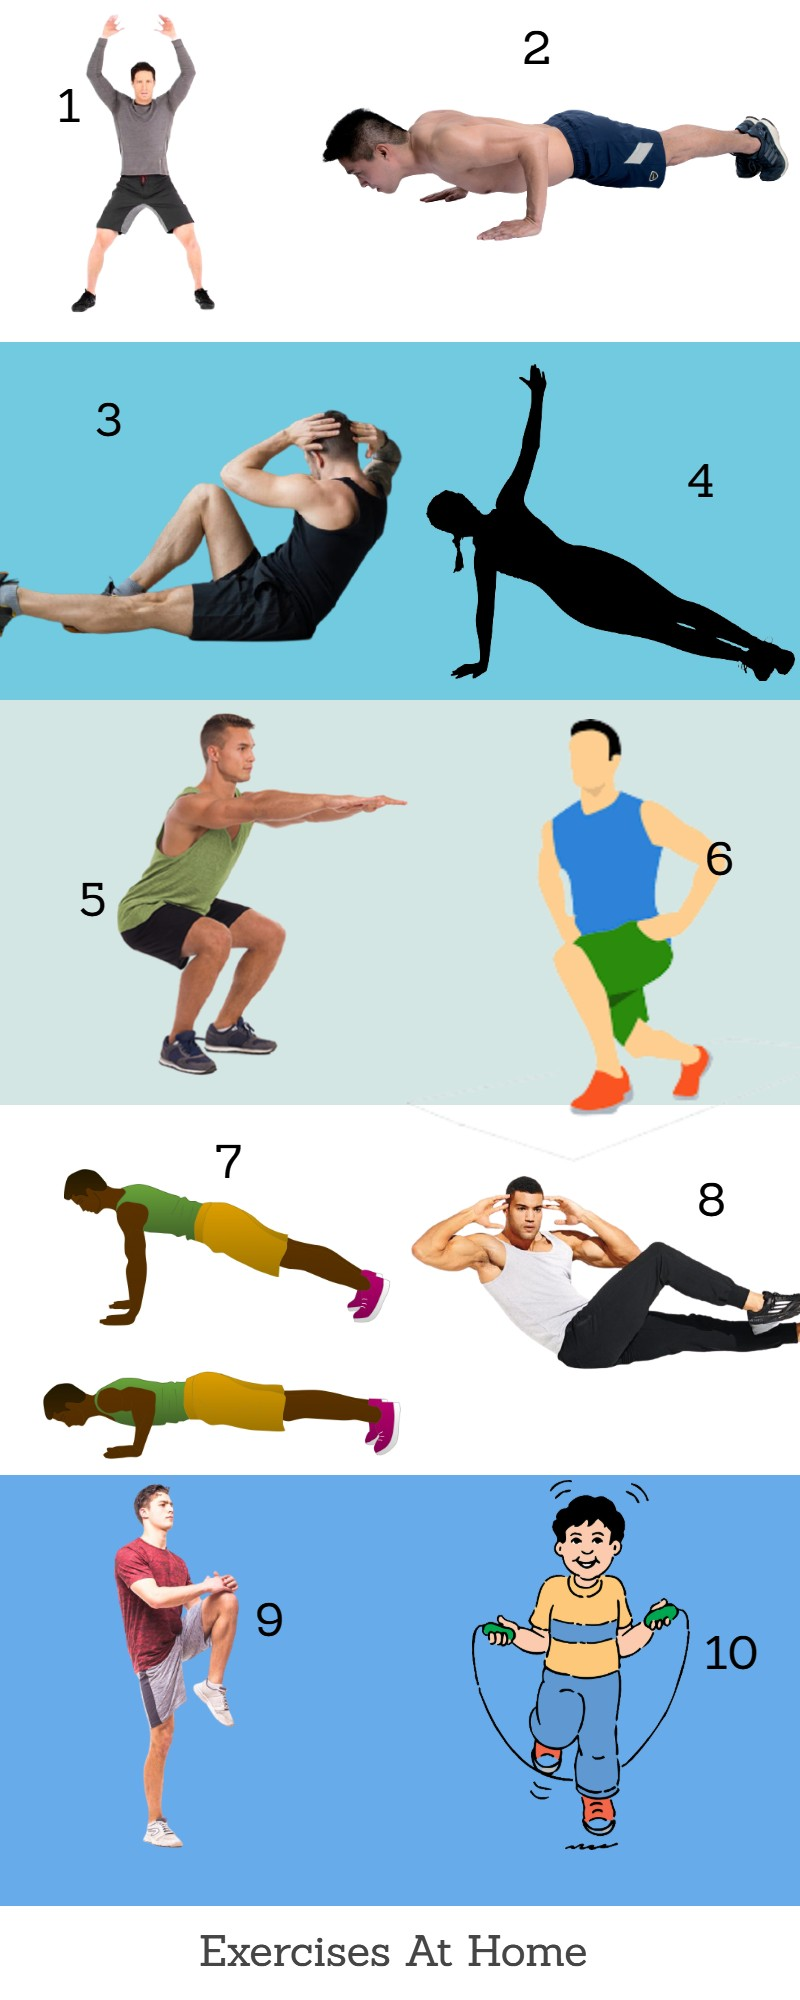 https://tipswali.com/wp-content/uploads/2021/07/Exercises-At-Home-infographic.jpg